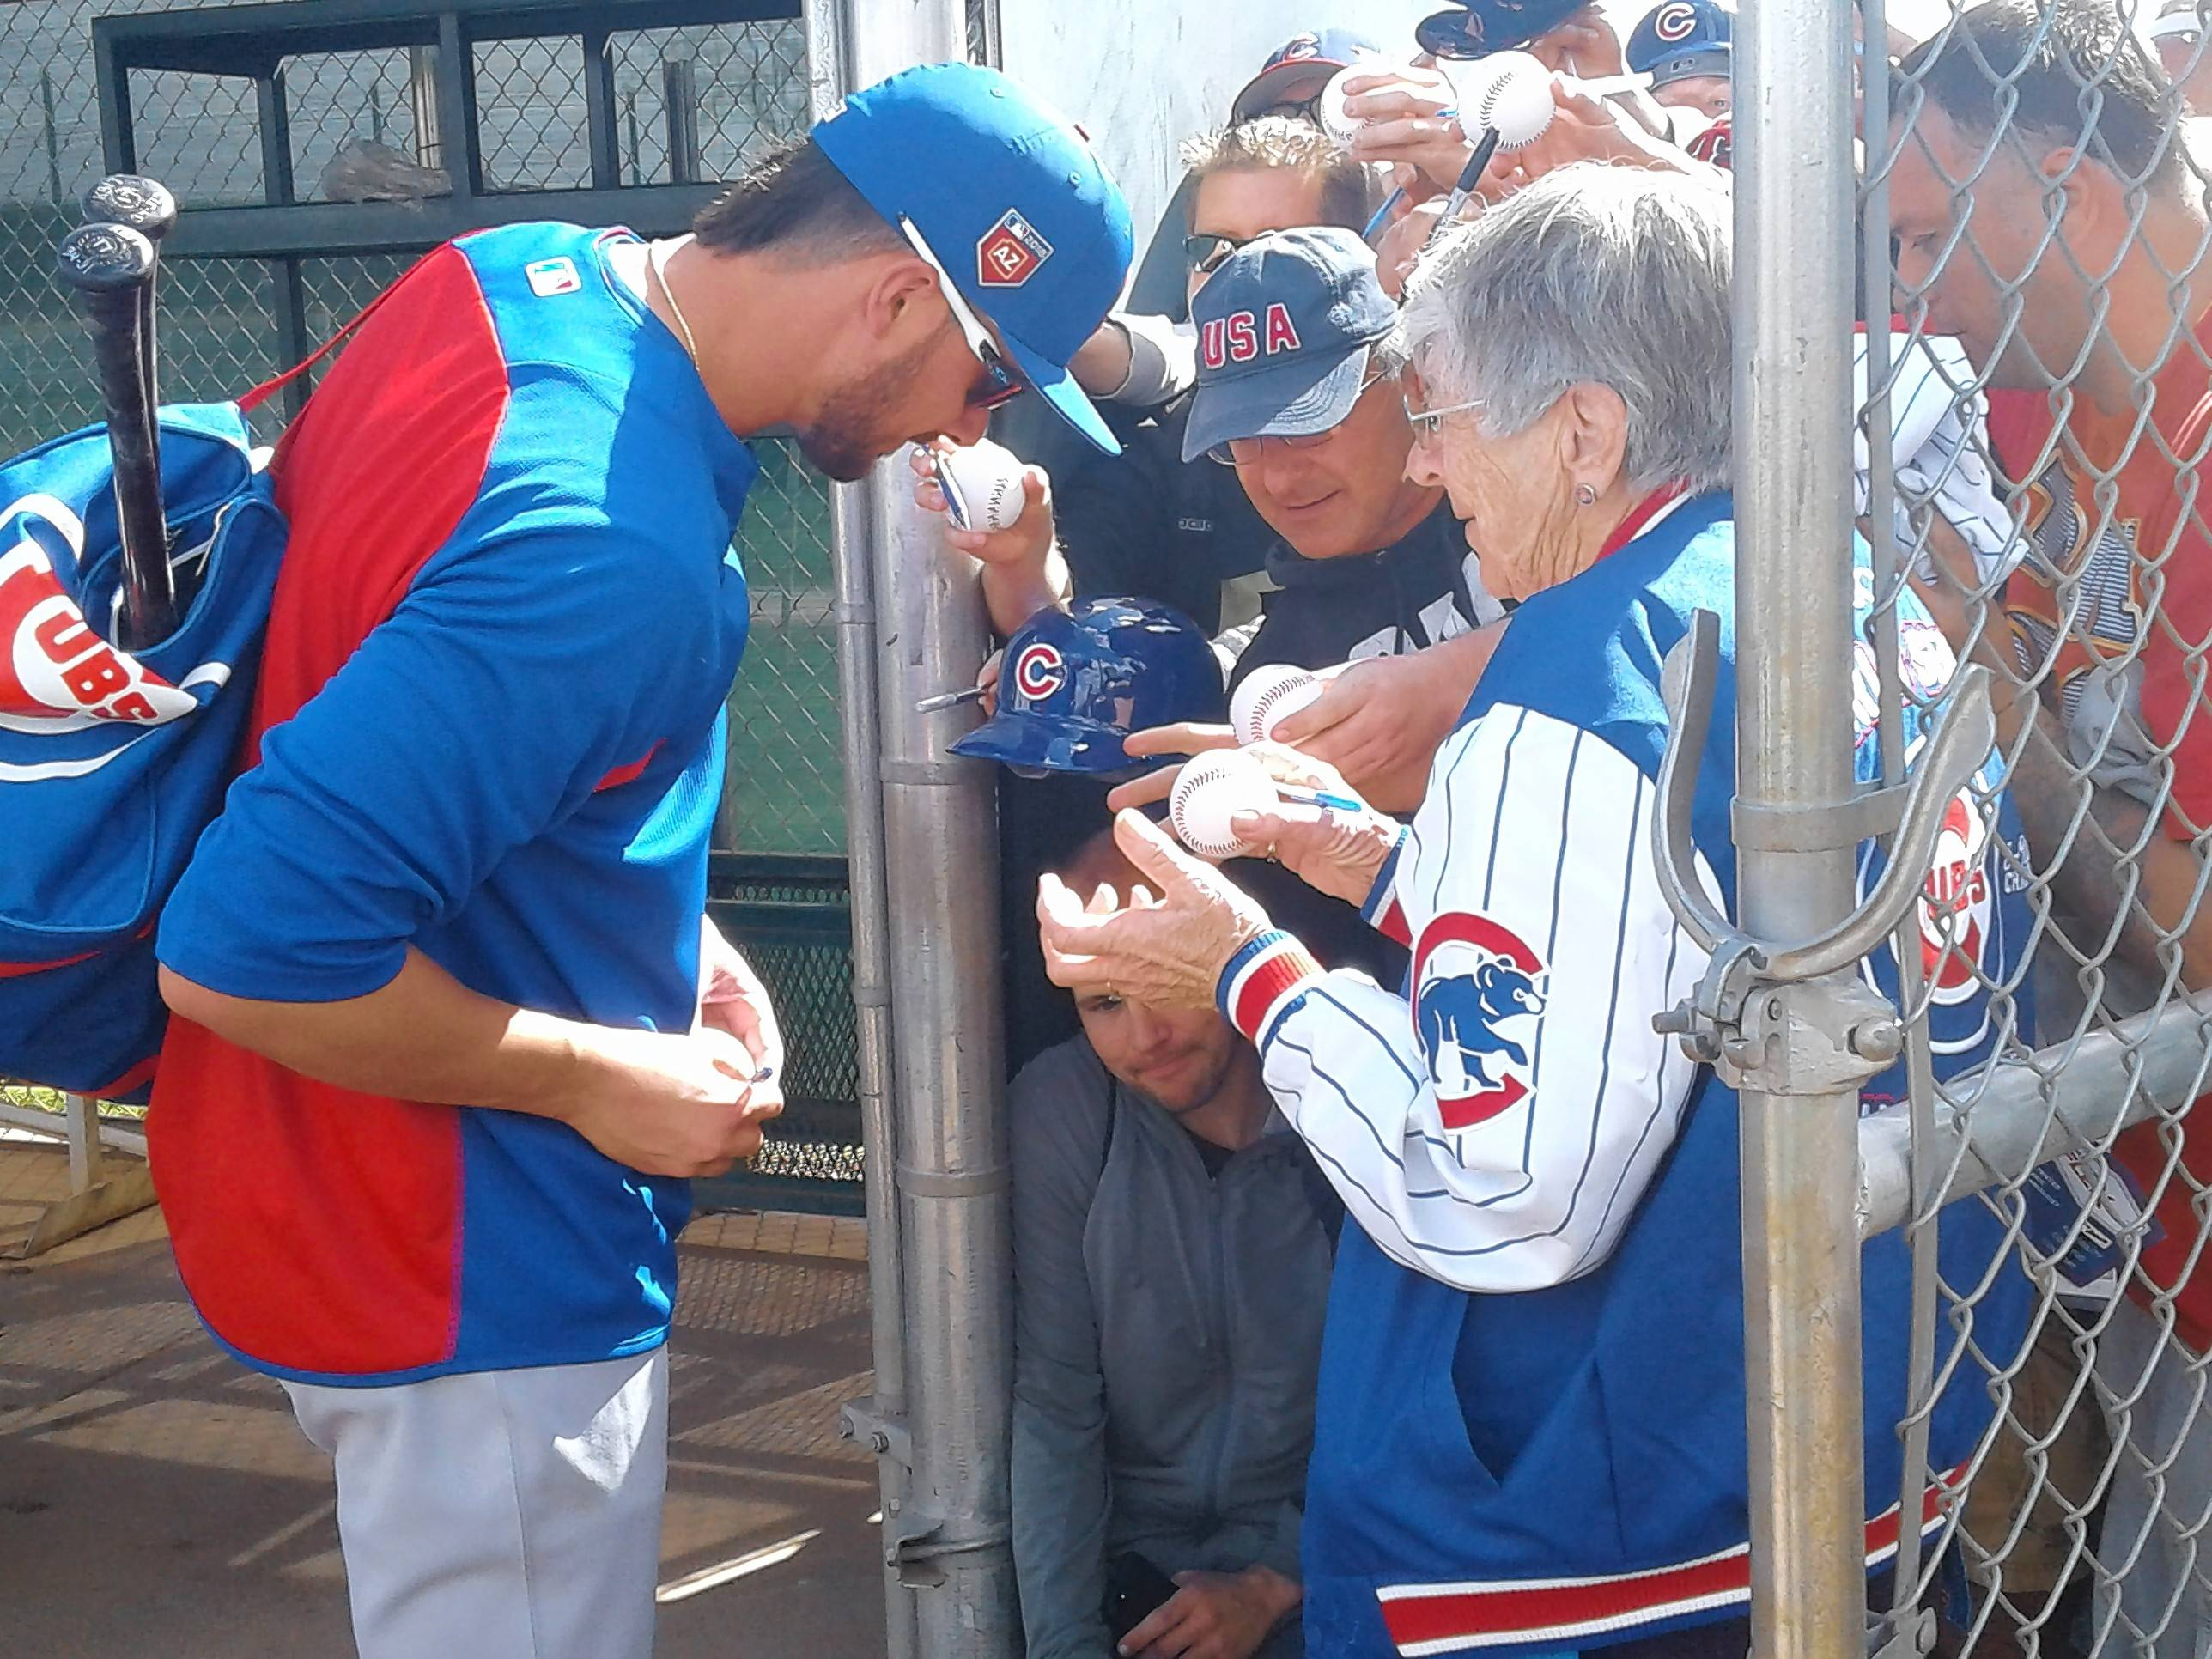 BRUCE MILES/bmiles@dailyherald.comChicago Cubs third baseman Kris Bryant spends some time with fans on Monday as the Cubs held their first full spring training workout in Mesa, Arizona.